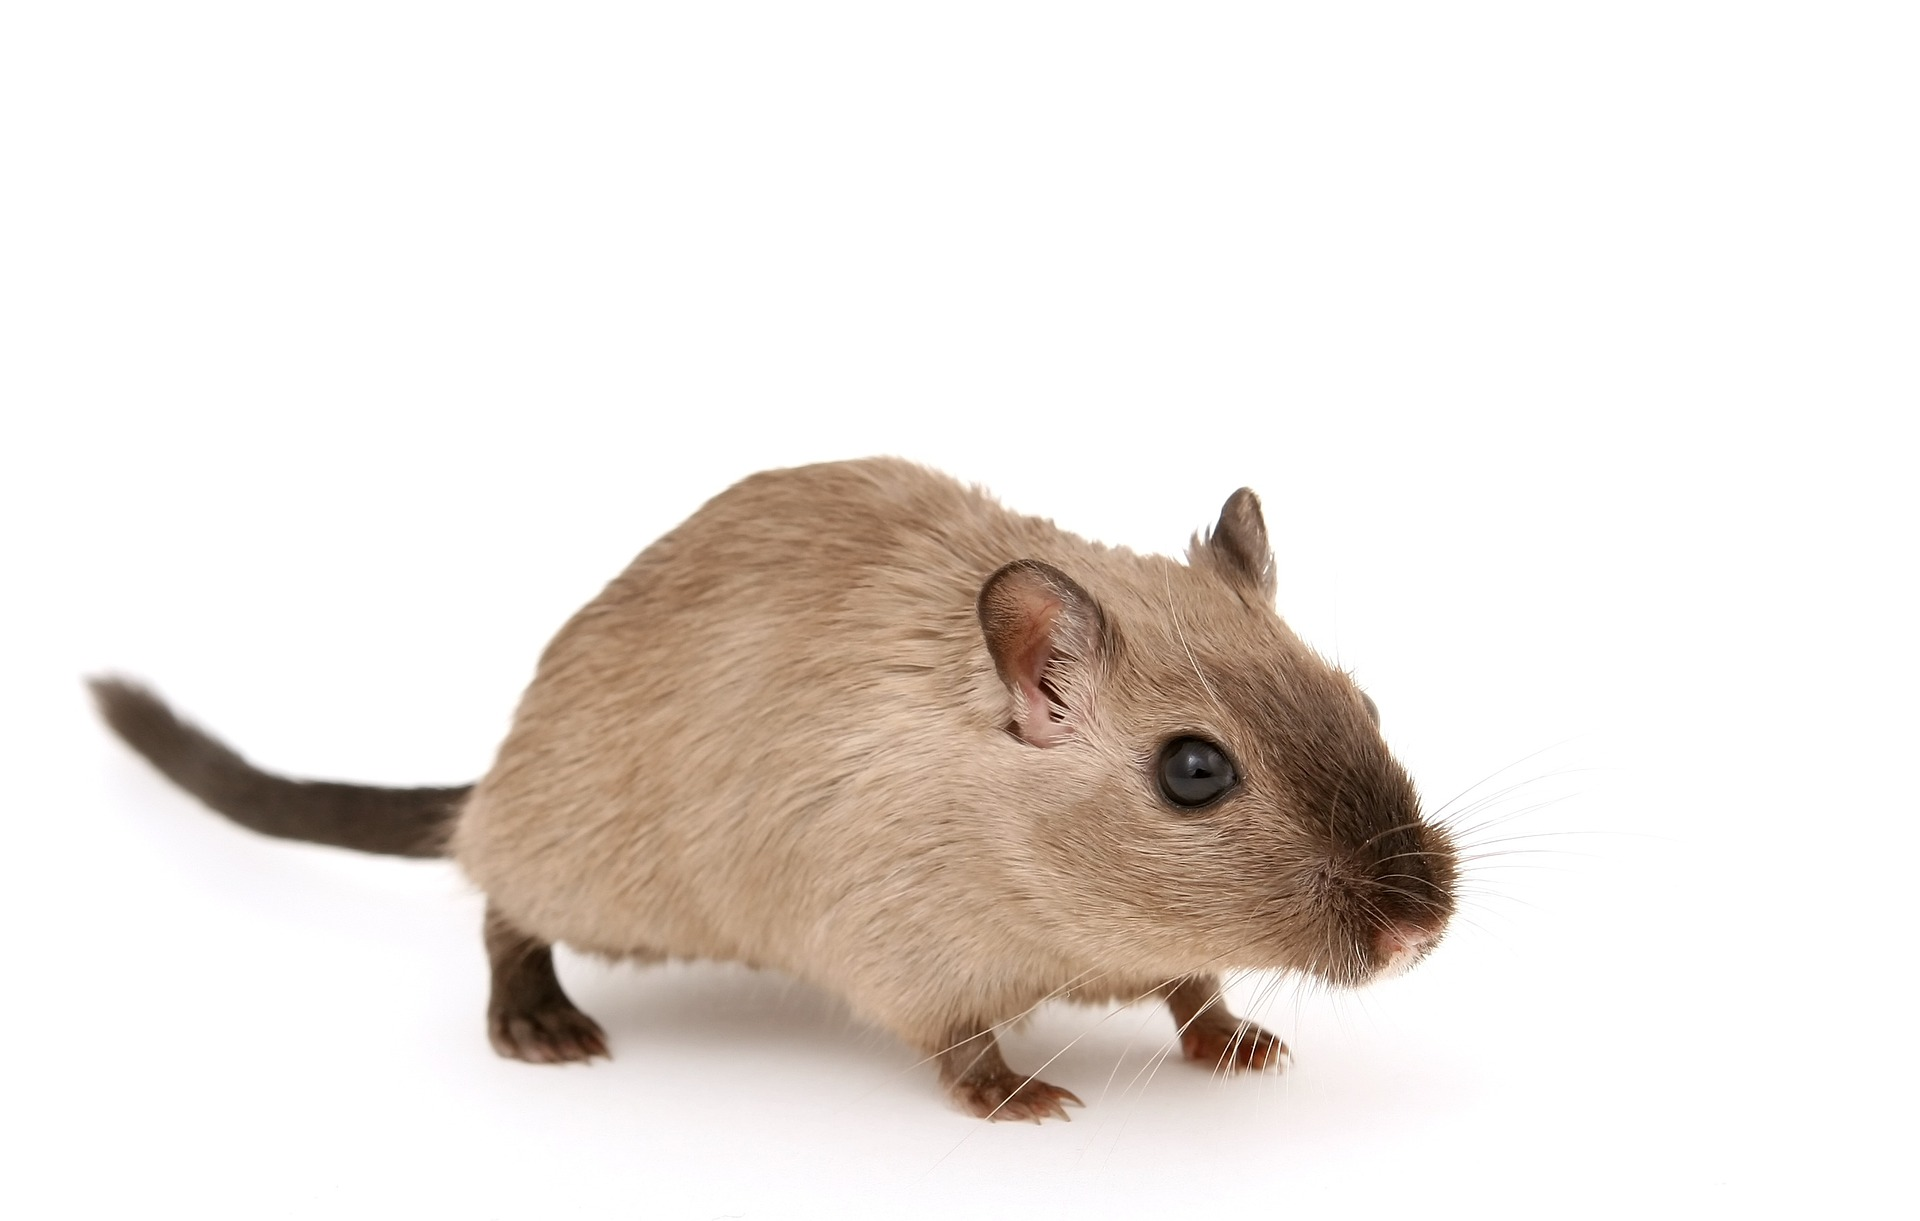 Rodents, mice, rats, rat removal, rodent removal, pest control, rodent removal New Orleans, local rodent removal, local pest control, rodent removal services